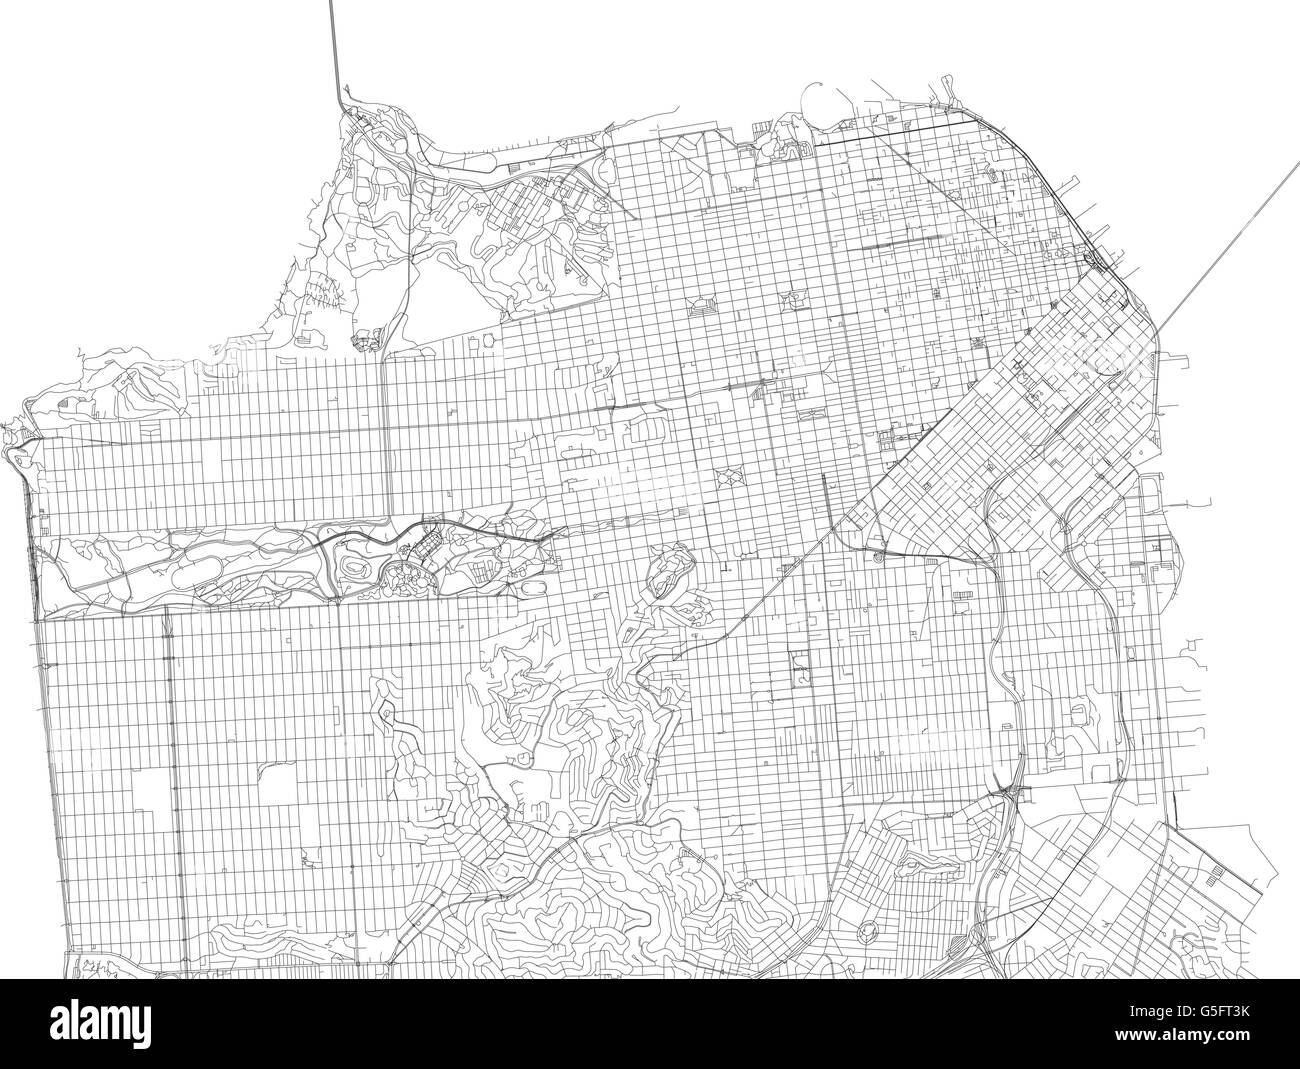 Map Of San Francisco Satellite View Streets And Highways US - San francisco on the us map